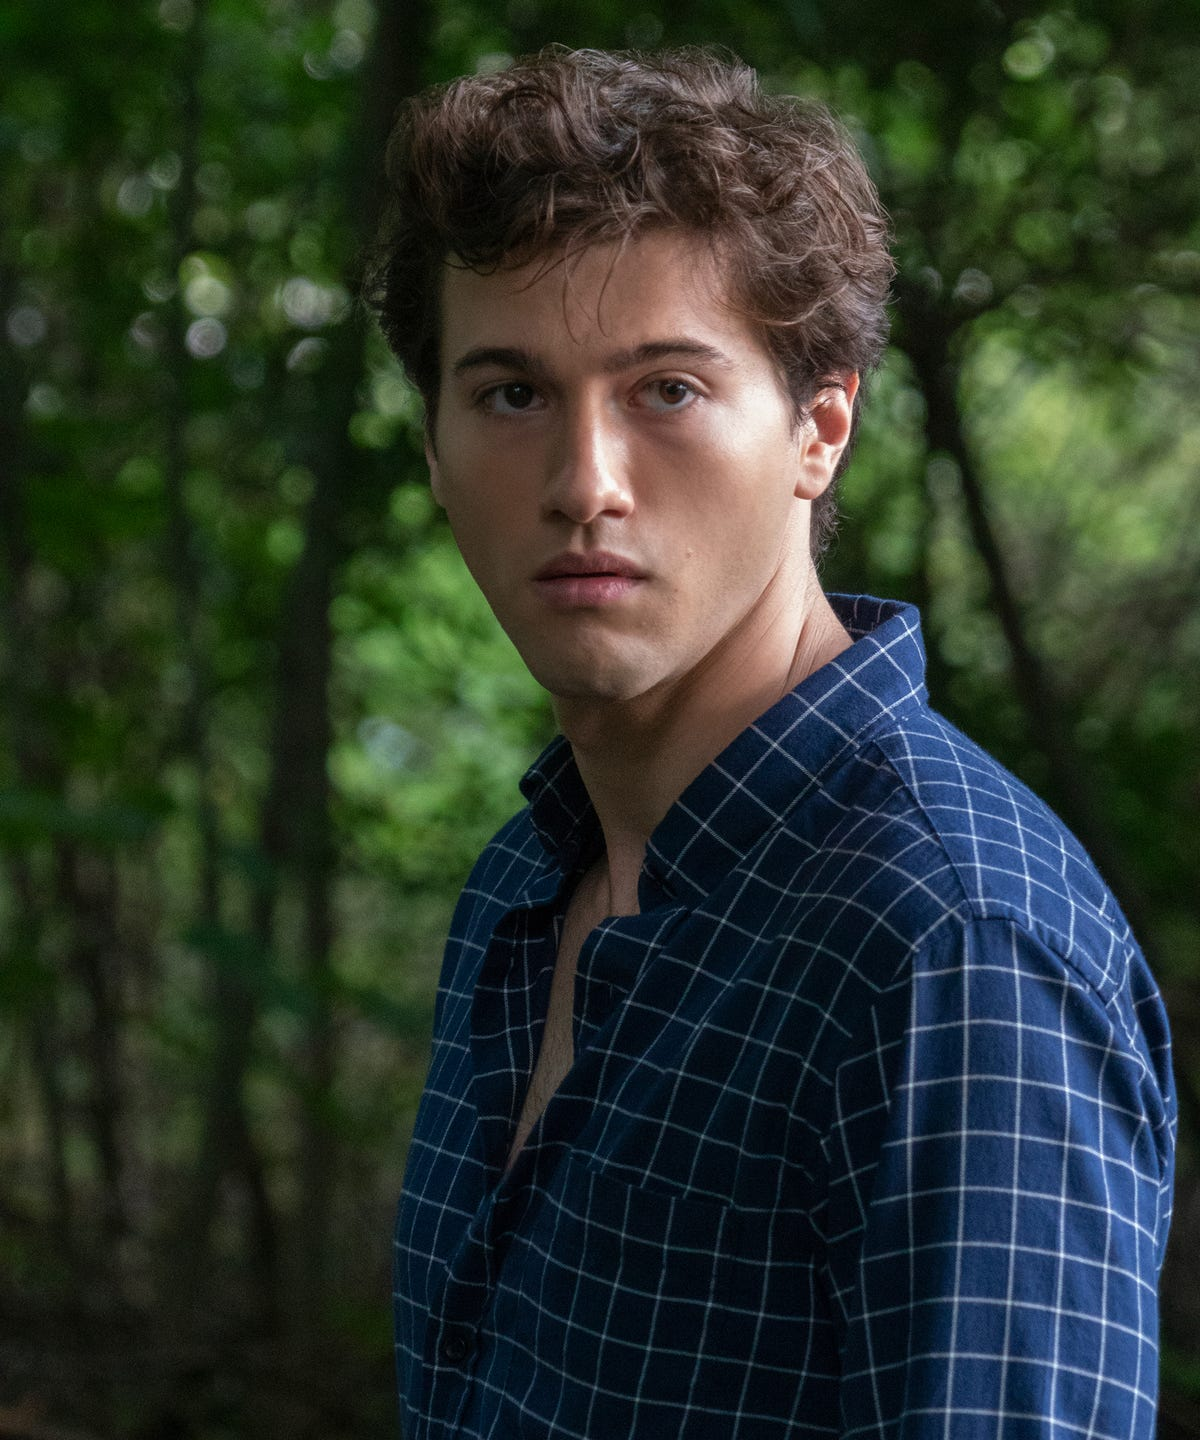 The Cast And Characters From Netflix Show The Society